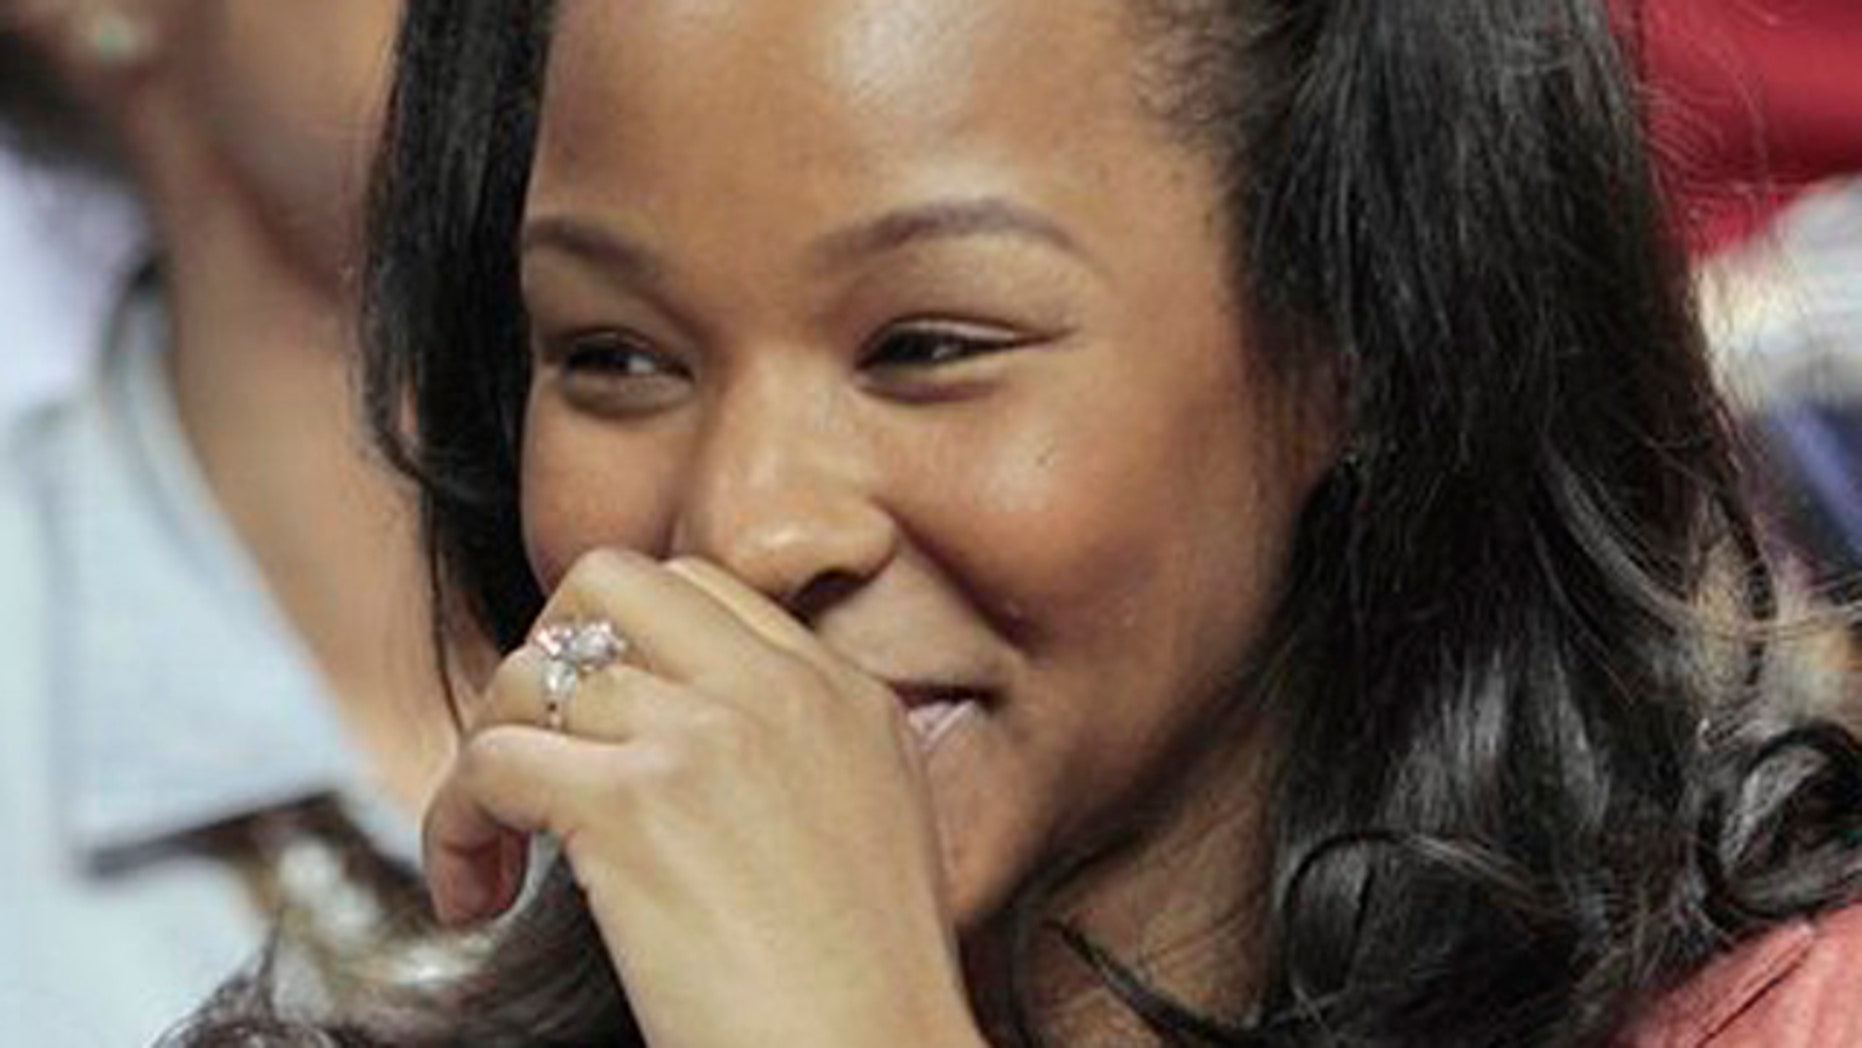 January 1, 2012: Savannah Brinson shows off her engagement ring from Miami Heat's LeBron James, her fiance, after an NBA basketball game between the Miami Heat and Charlotte Bobcats in Miami.